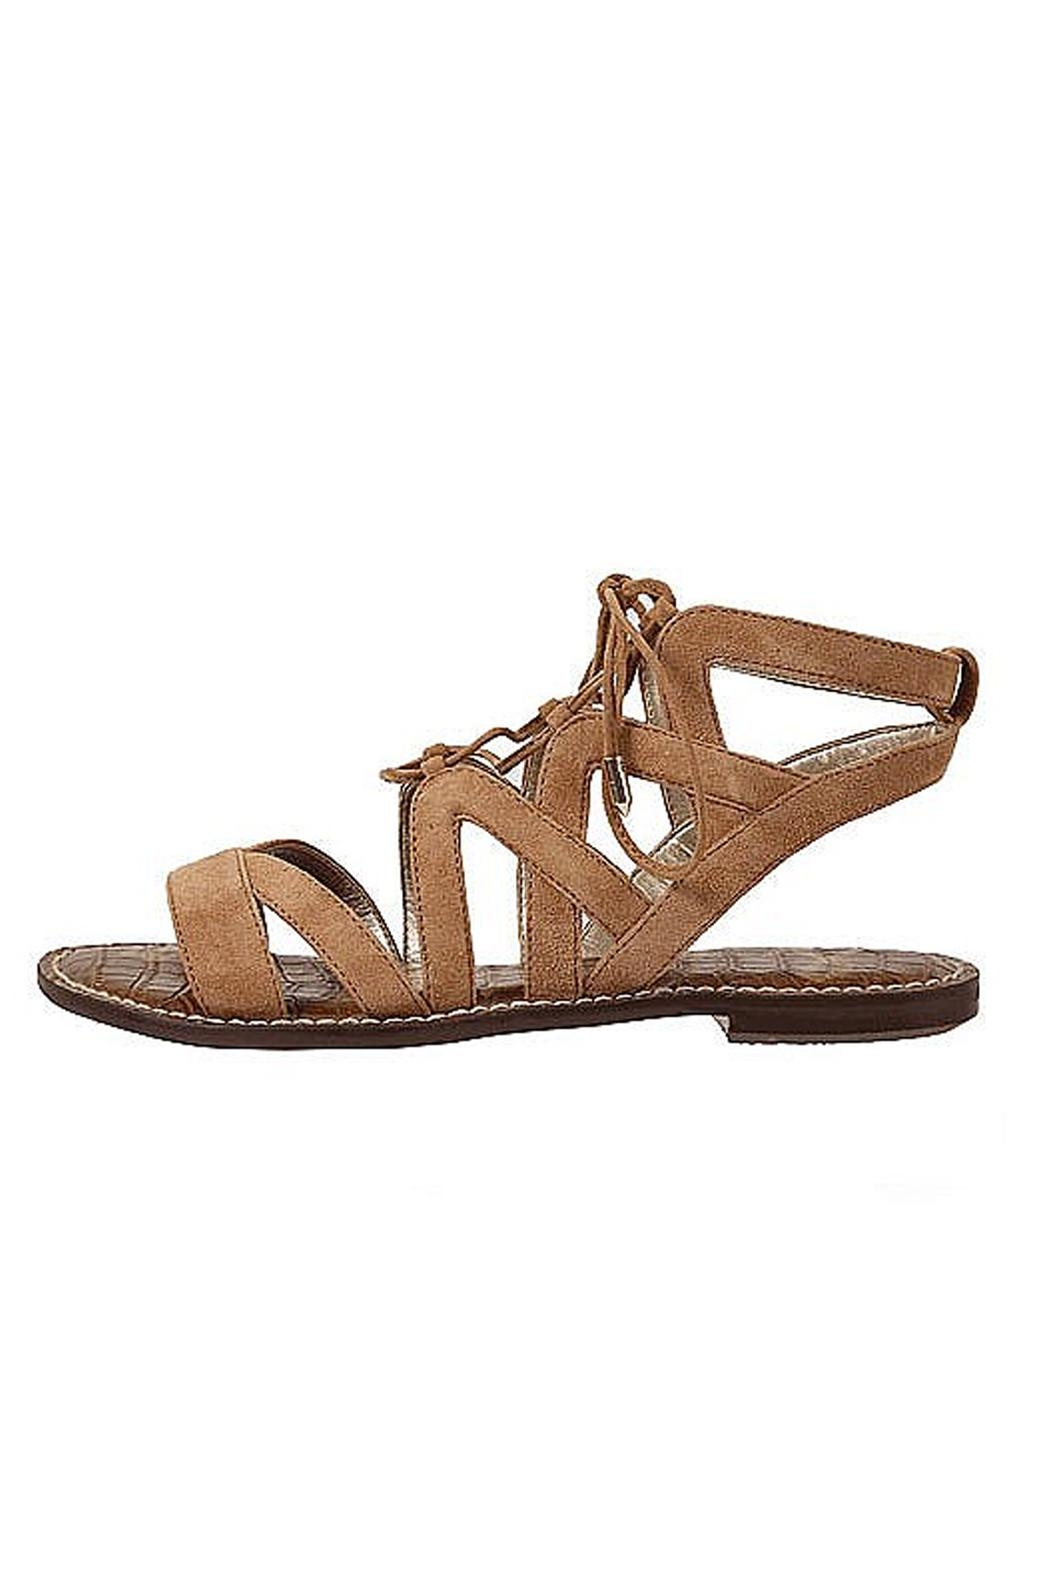 Sam Edelman Brown Lace Up Sandals - Main Image